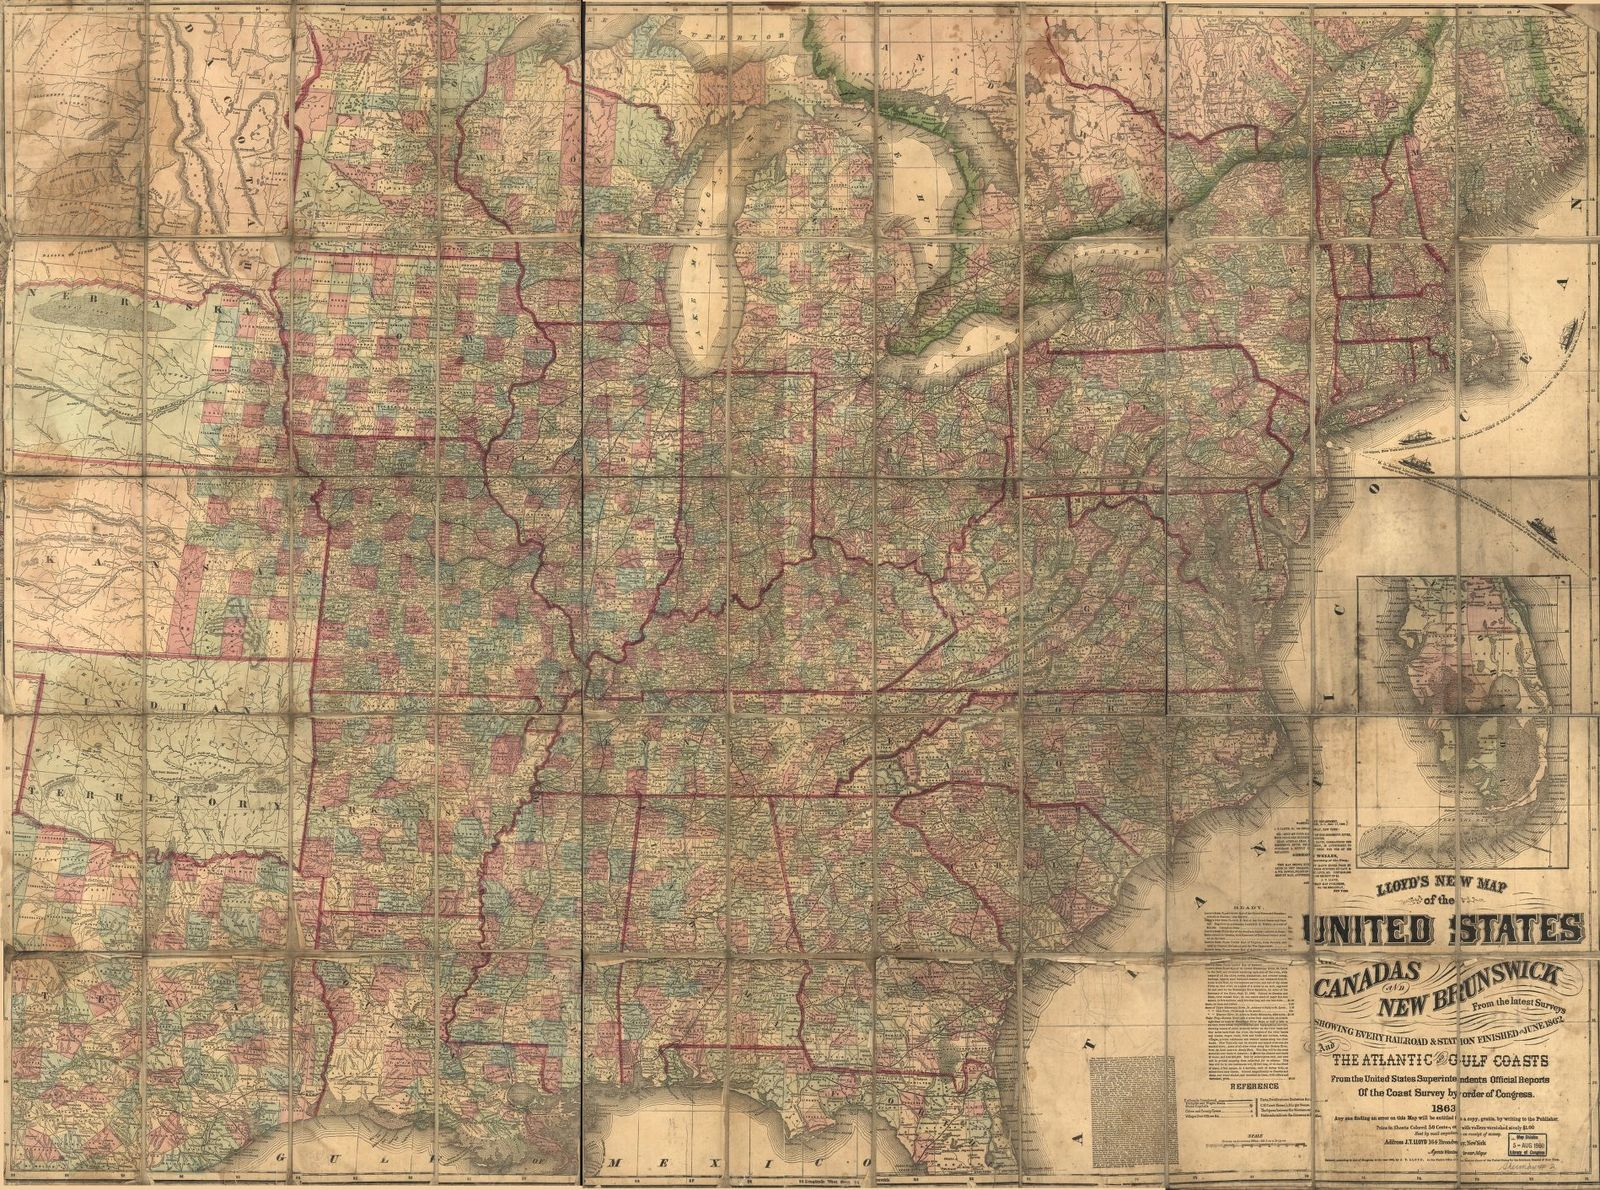 Lloyd's new map of the United States, the Canadas and New Brunswick, and the Atlantic and Gulf coasts : from the latest surveys showing every railroad & station finished to June 1862 /